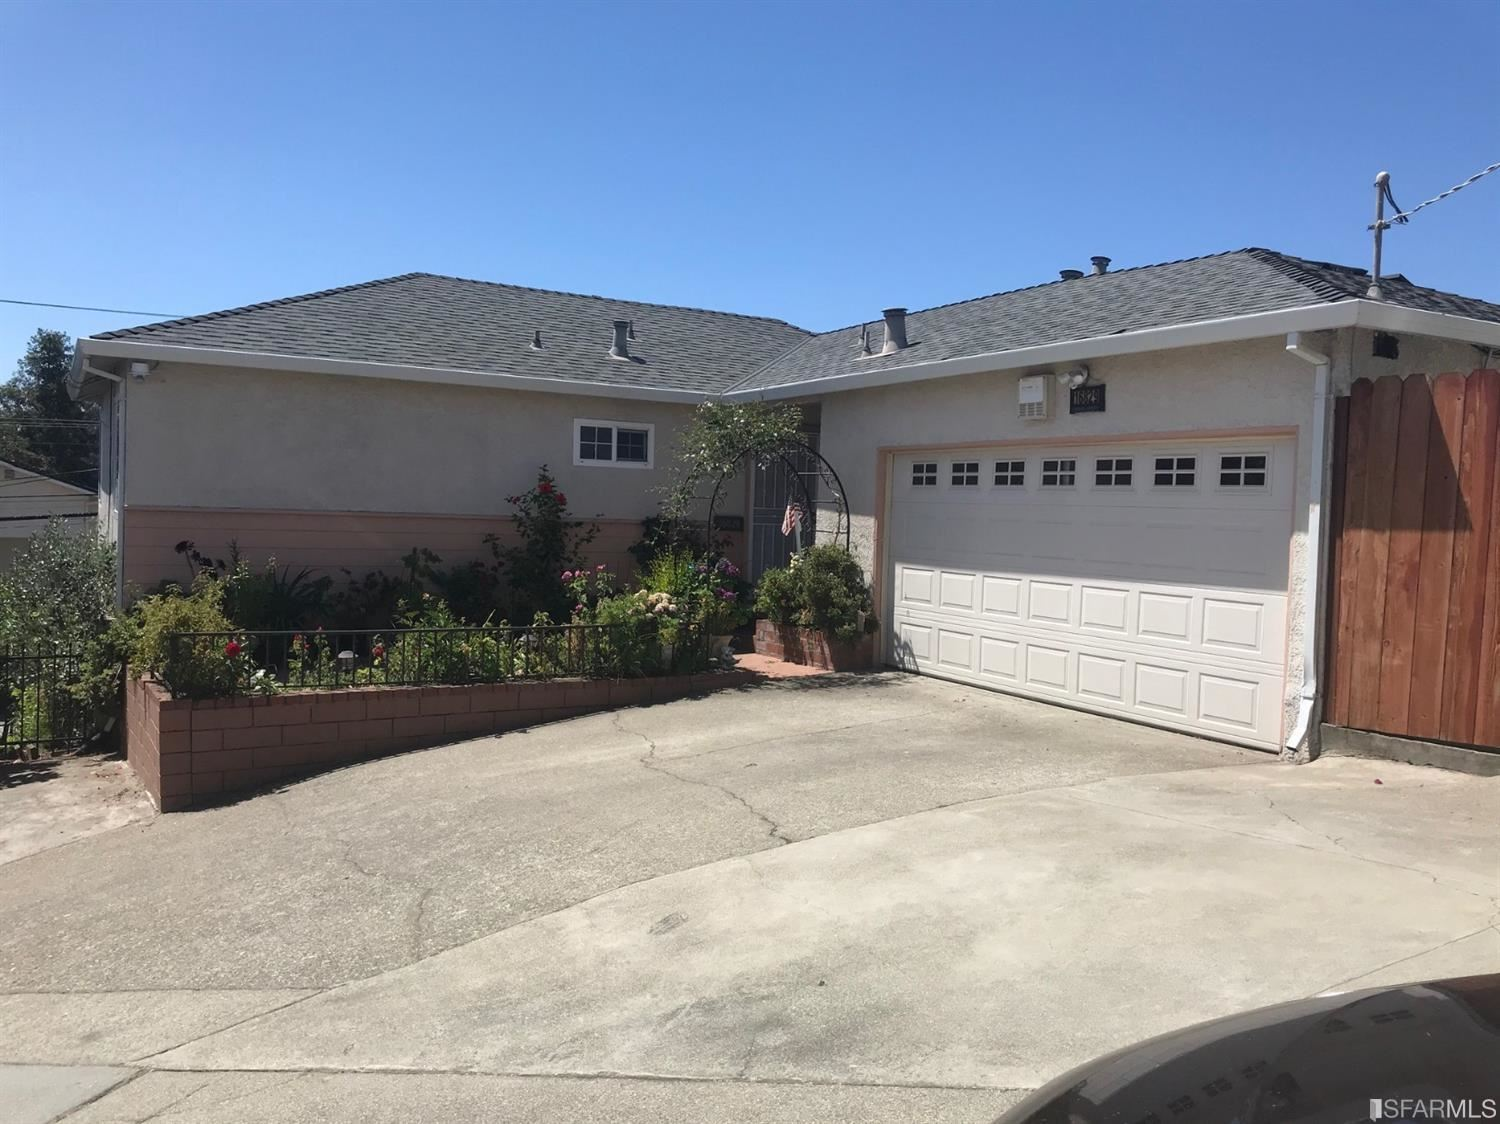 16829 Selby, San Leandro, CA 94578 - #: 500805